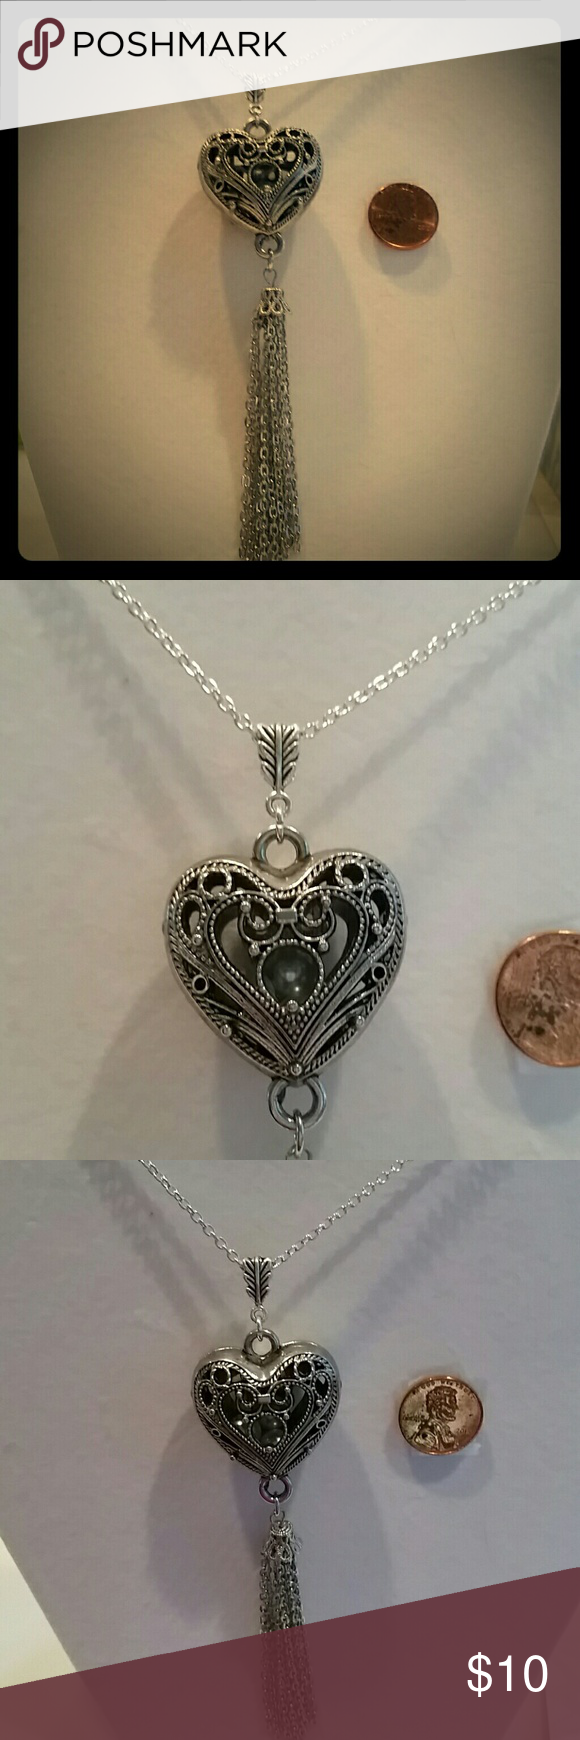 """Stirling silver chain holds heart tassel pendant Strikingly Beautiful handcrafted genuine 19"""" striling chain, inside of heart locket R real pearls! ! ! ! Handcrafted by me with a ton of Love! ? ?? ? ?? ? ?? ? ?? ? ?? Always made of high quality beads and materials! Custom 1 of a kind designs!  #greatdeal  #hotlook  #UwilllookMarv  #Classylook  #Sassy  #uniqueisgreat! ! ! ! ! ! ! !  #Onlyuwillhave! ! ! ! ! ! ! ! ! ! ! ! ! my own  Jewelry Necklaces"""